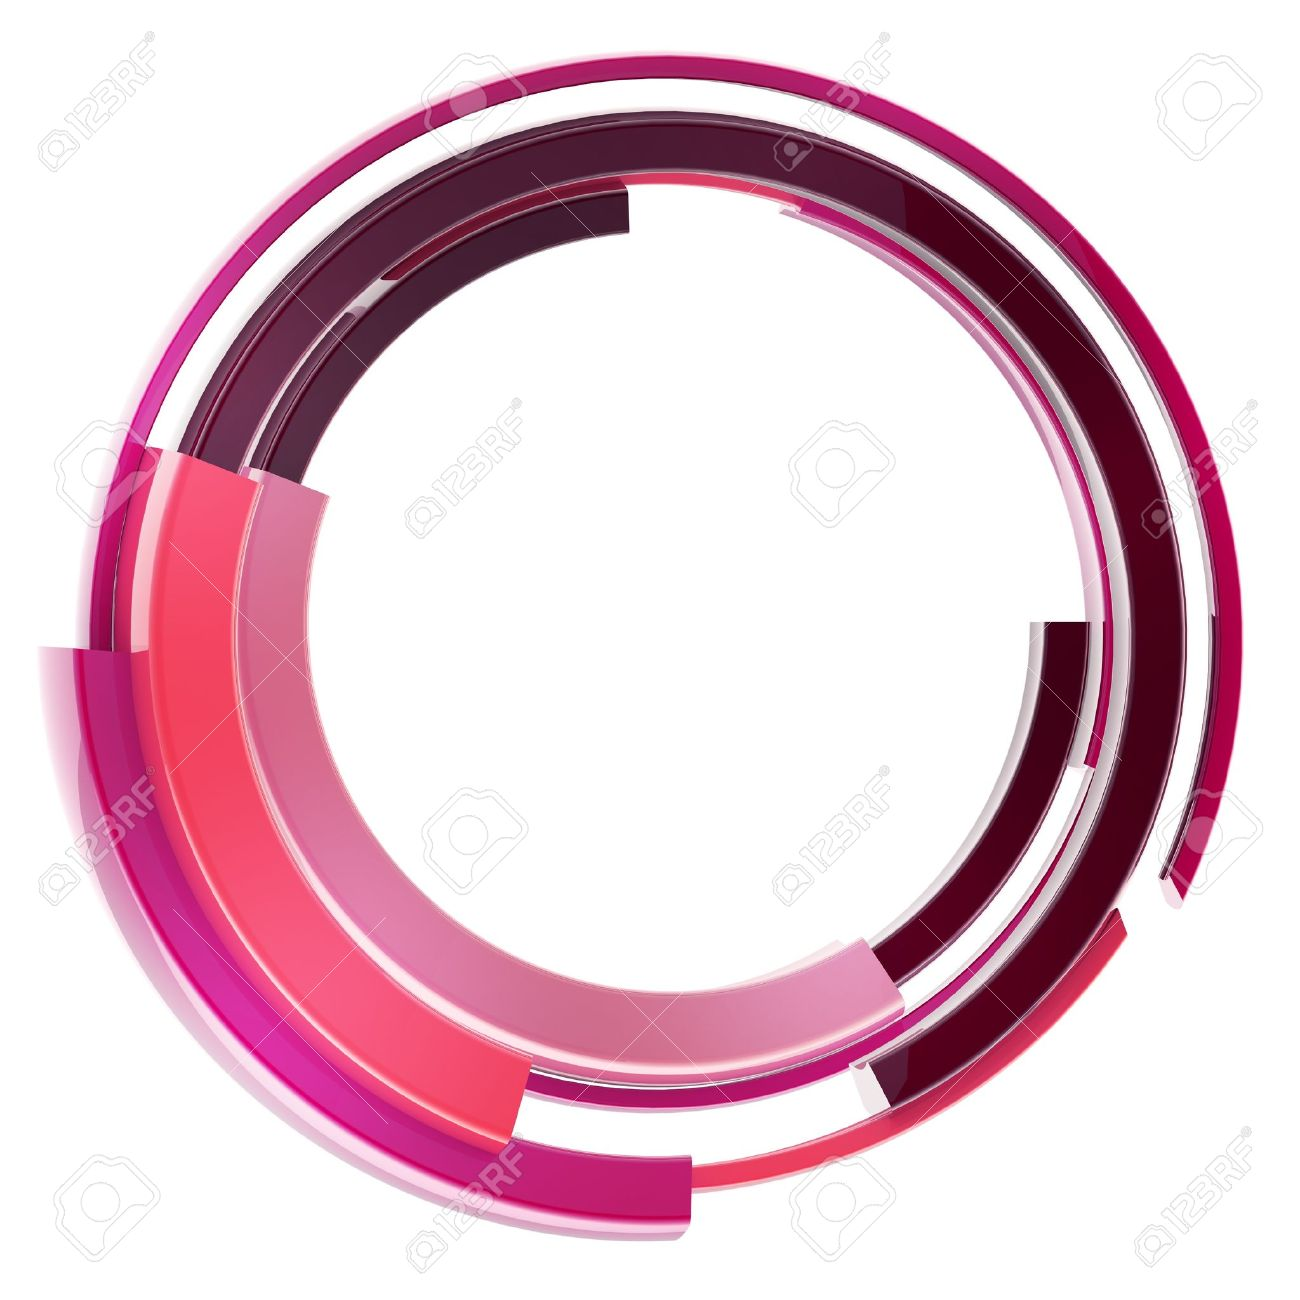 Abstract Techno Circular Frame Border Isolated Stock Photo, Picture ...